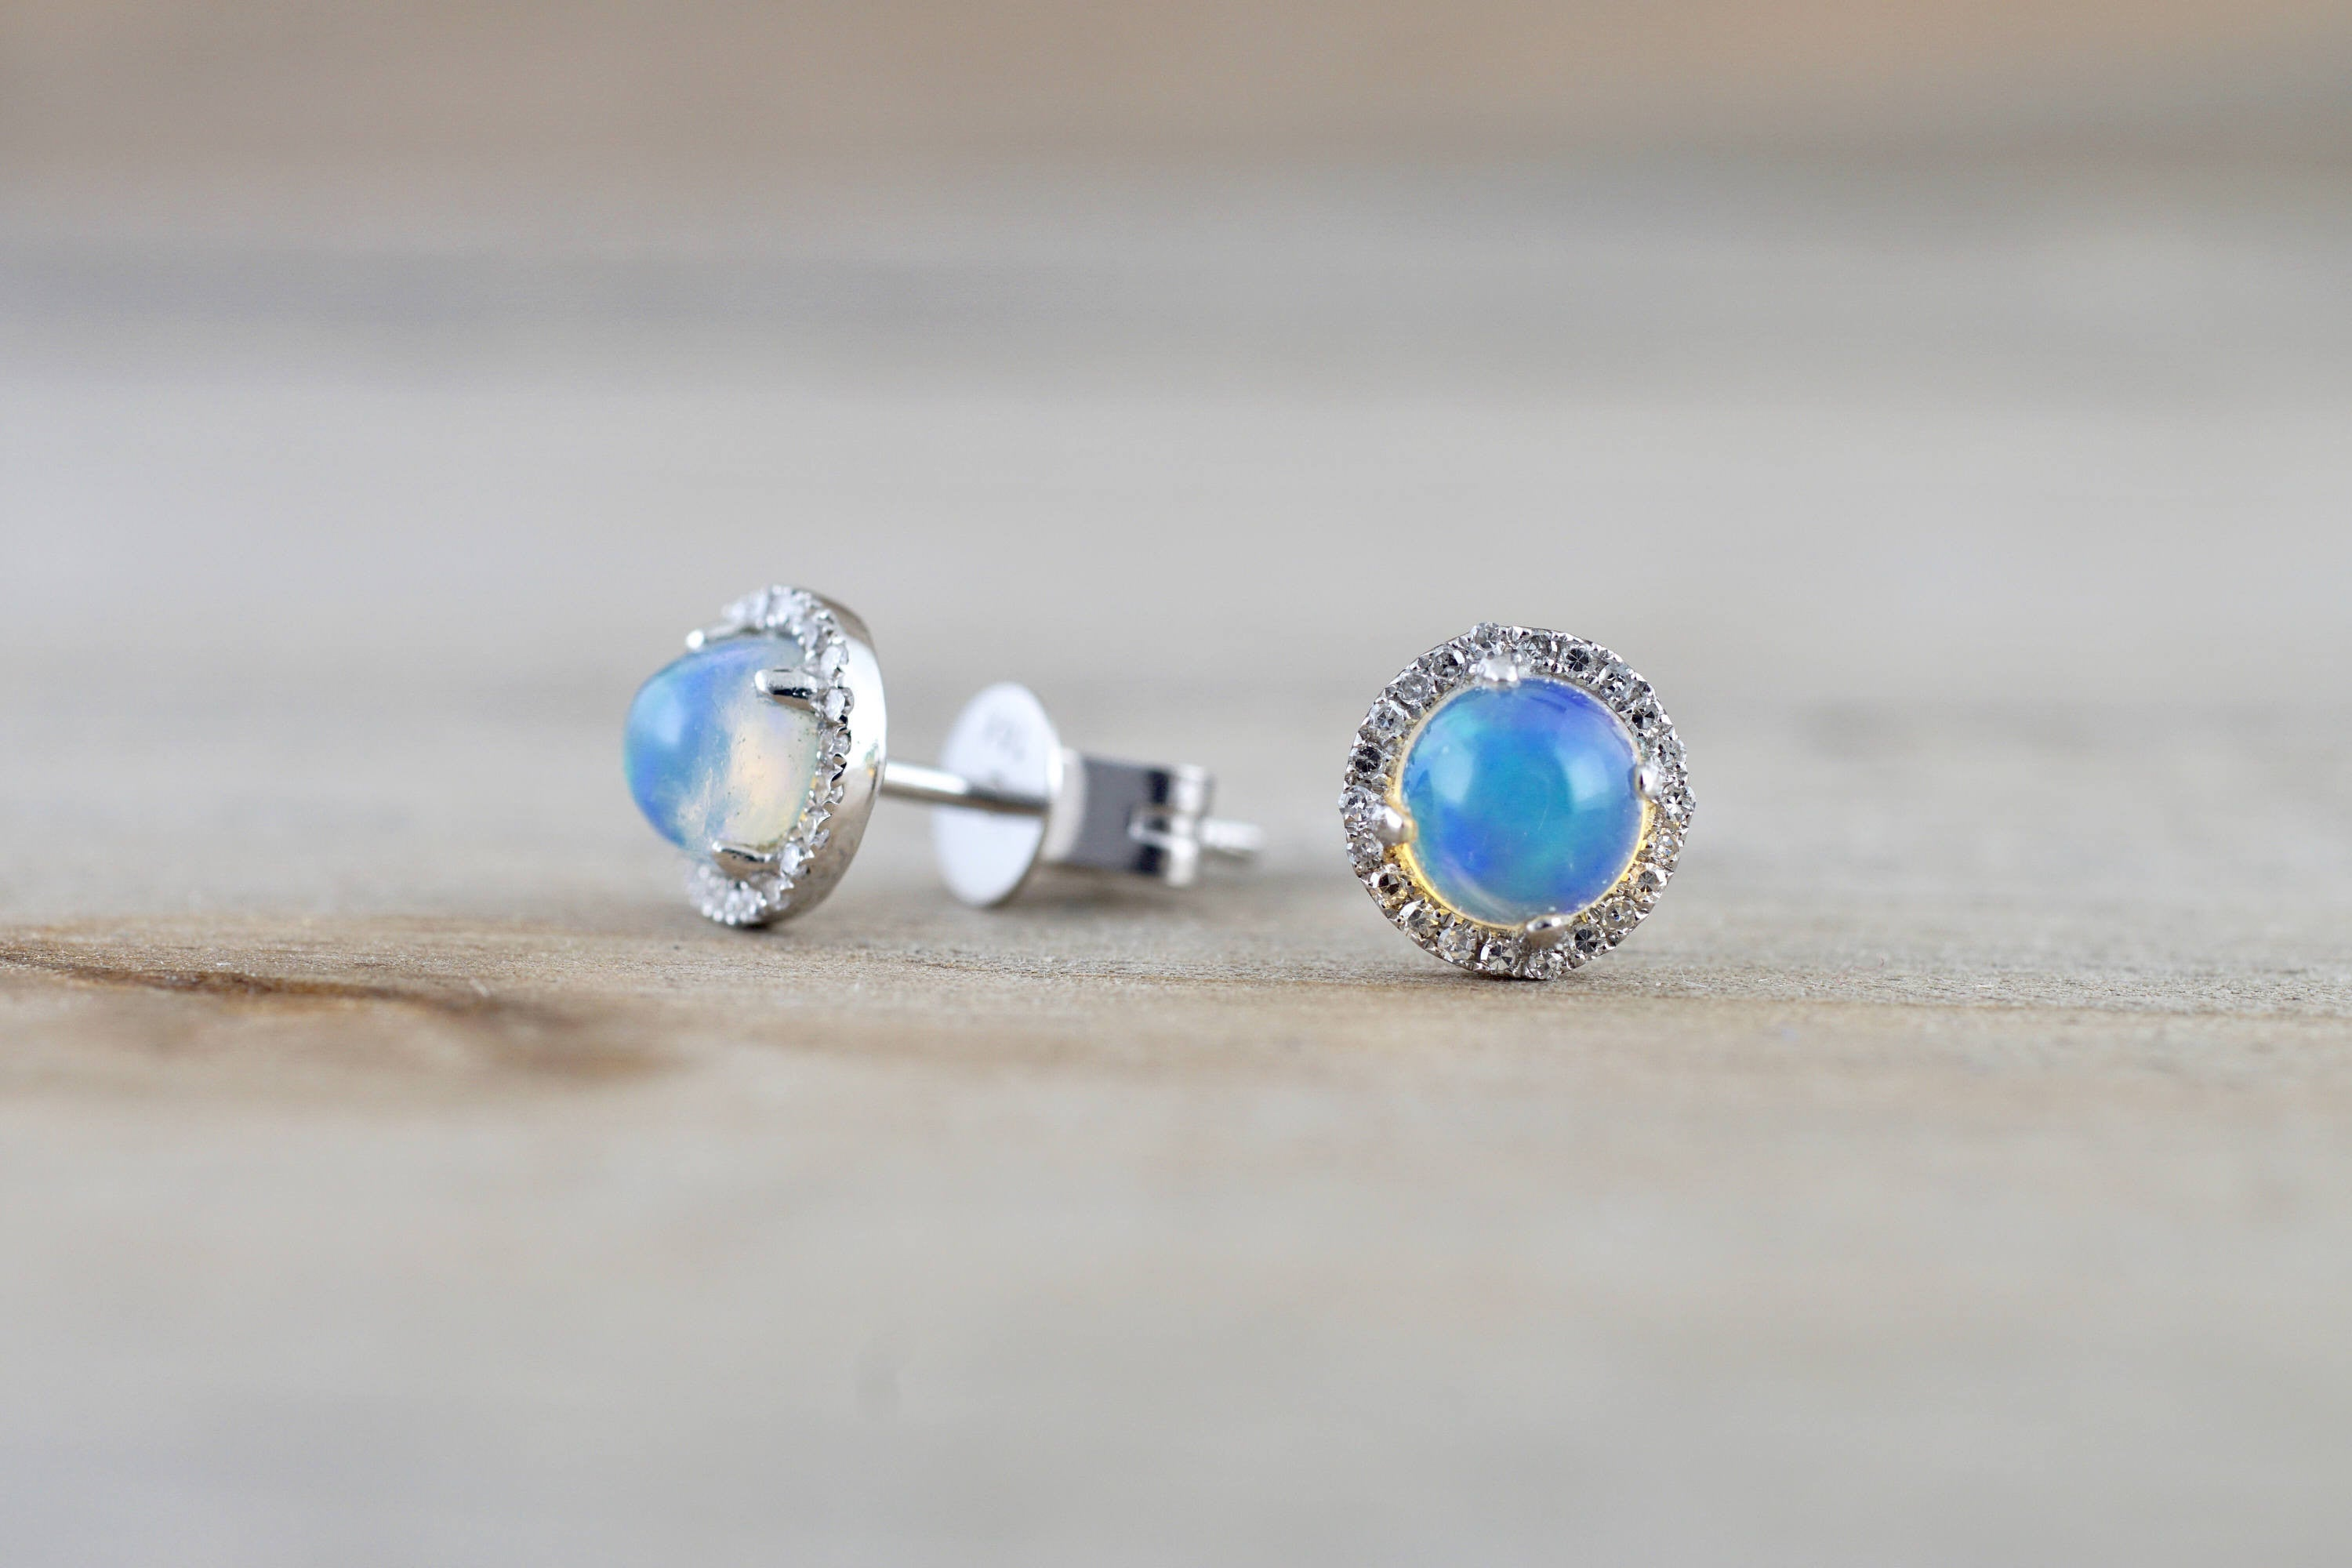 14k White Gold Round Opal Diamond Halo Earrings Studs